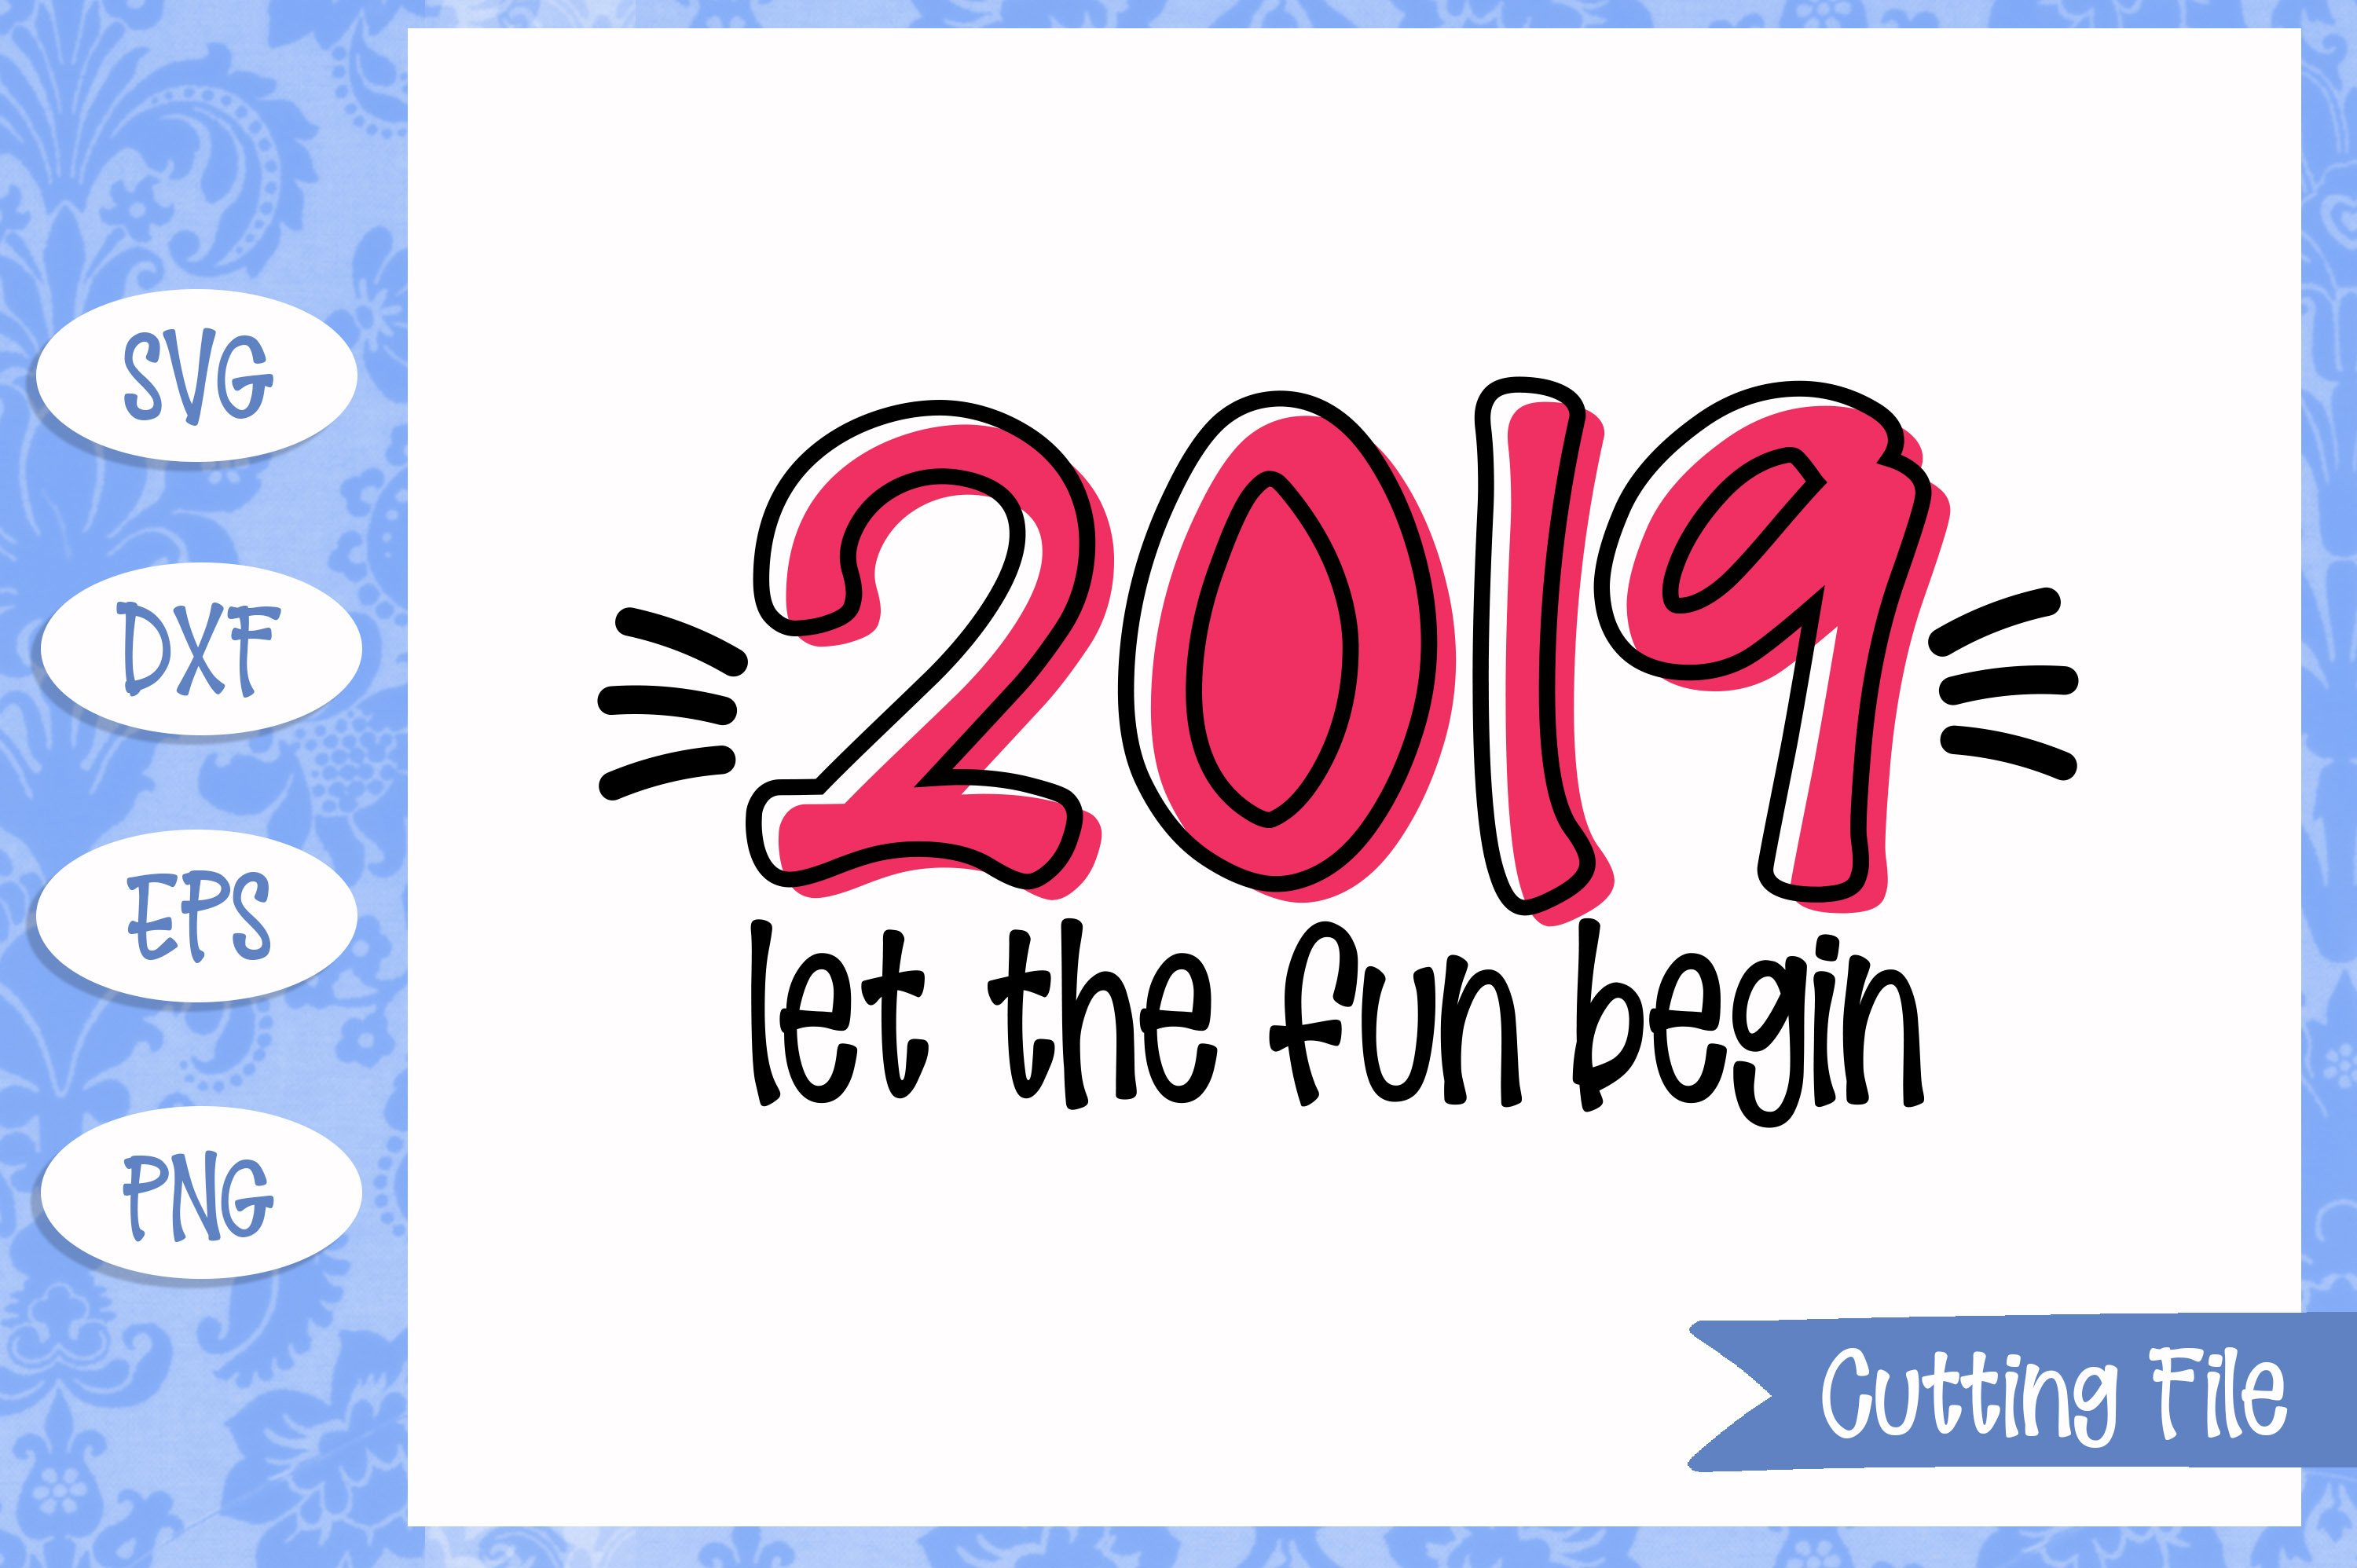 2019 Let the fun begin SVG File example image 1